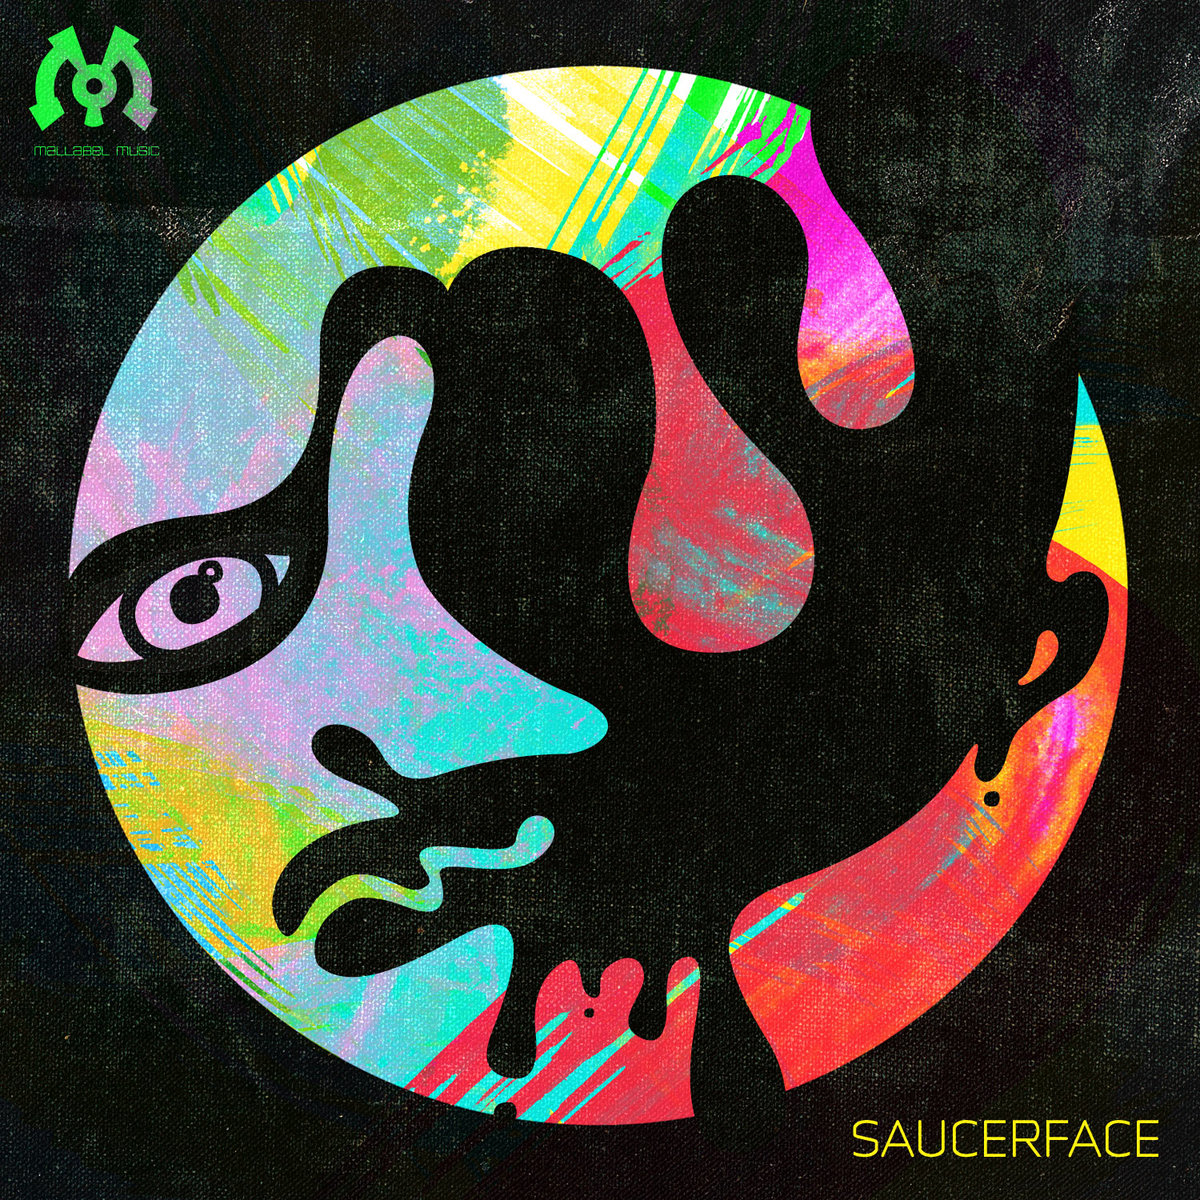 Minnesota - Meow @ 'Various Artists - Saucerface' album (electronic, dubstep)